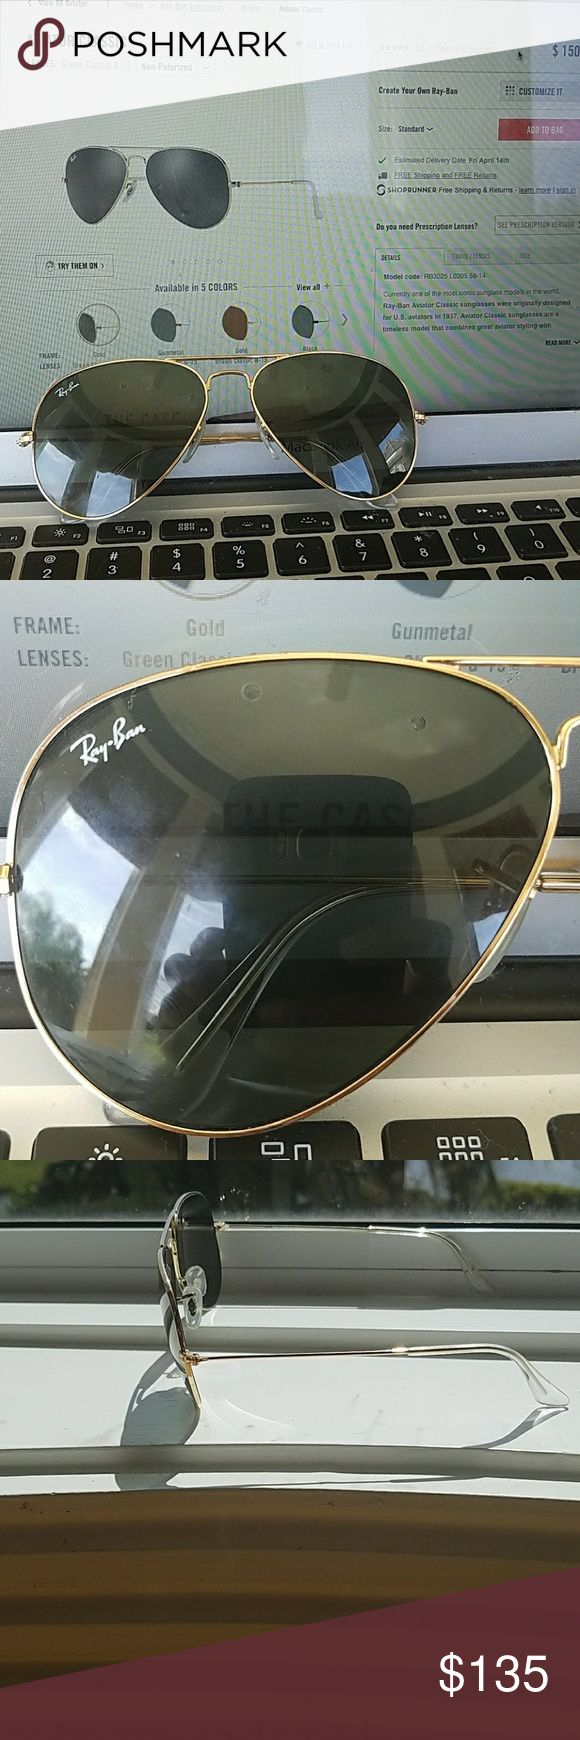 Gold aviator classic ray-ban sunglasses Gold rimmed aviator classic ray-ban sunglasses, in perfect condition, perfect for the beach this summer! Ray-Ban Accessories Sunglasses